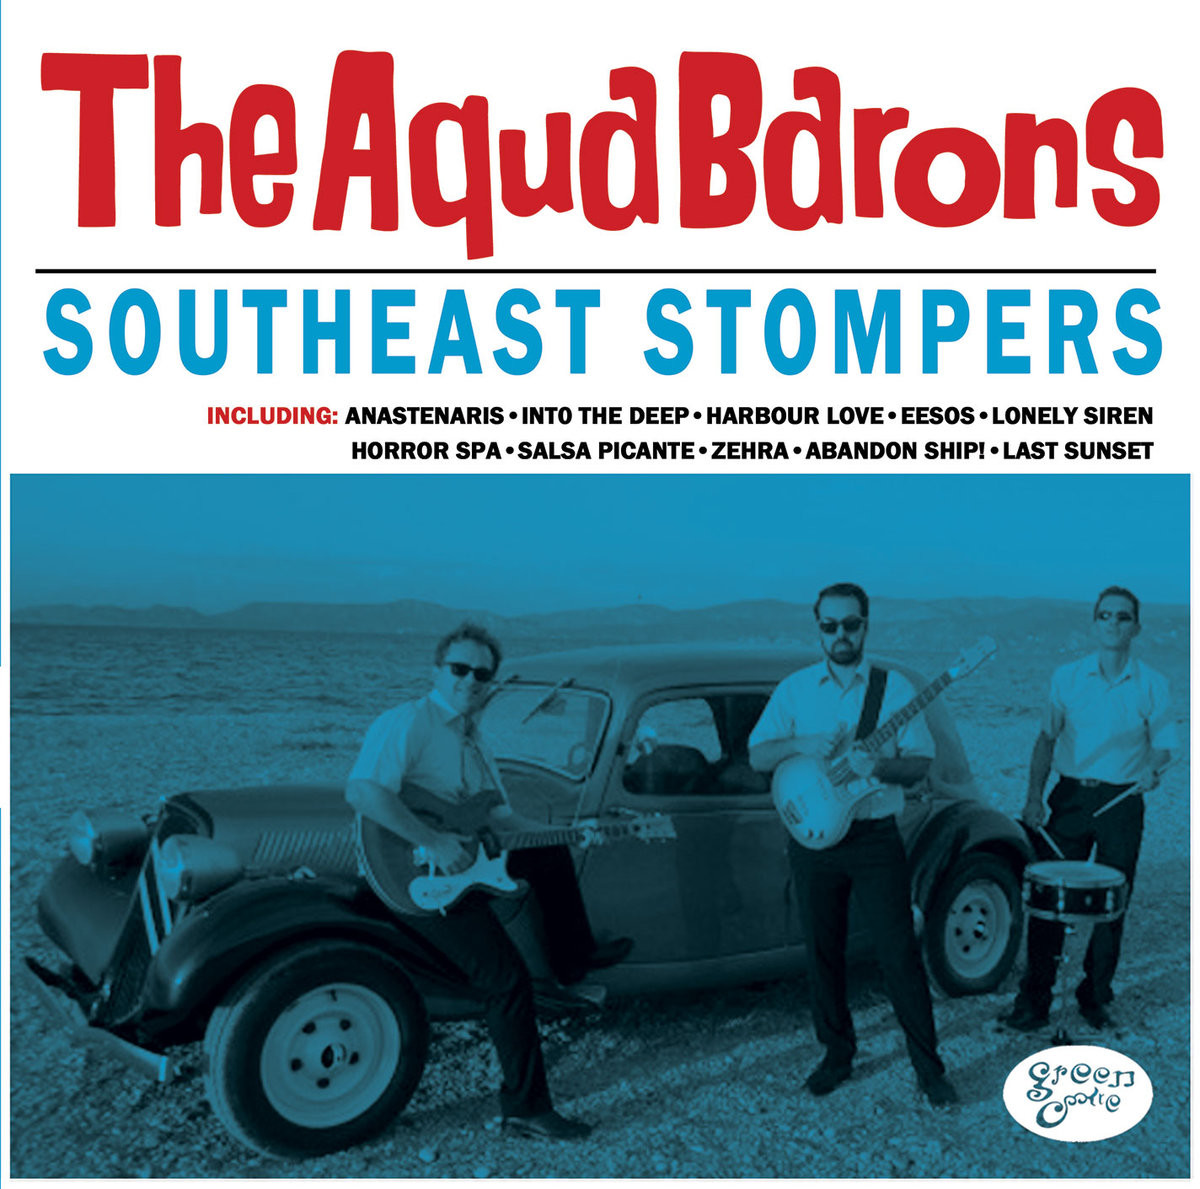 Aquabarons - Southern stompers (2)